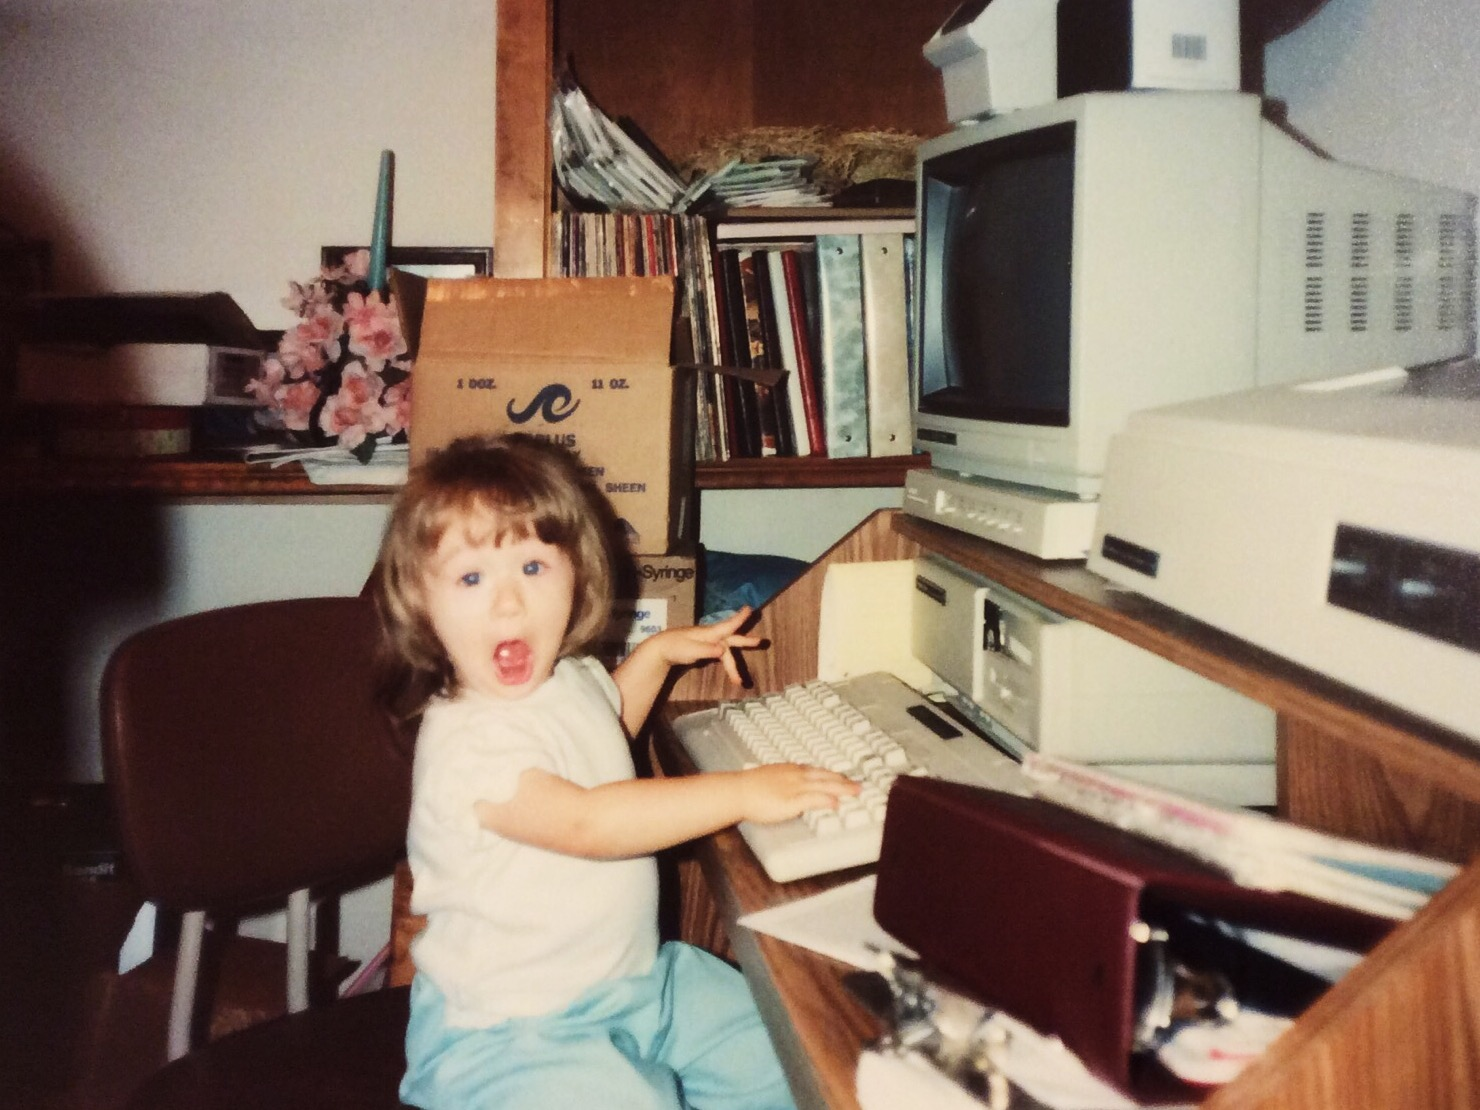 Myself as a toddler, most likely (trying) to play Wheel of Fortune on my parent's old Mac.